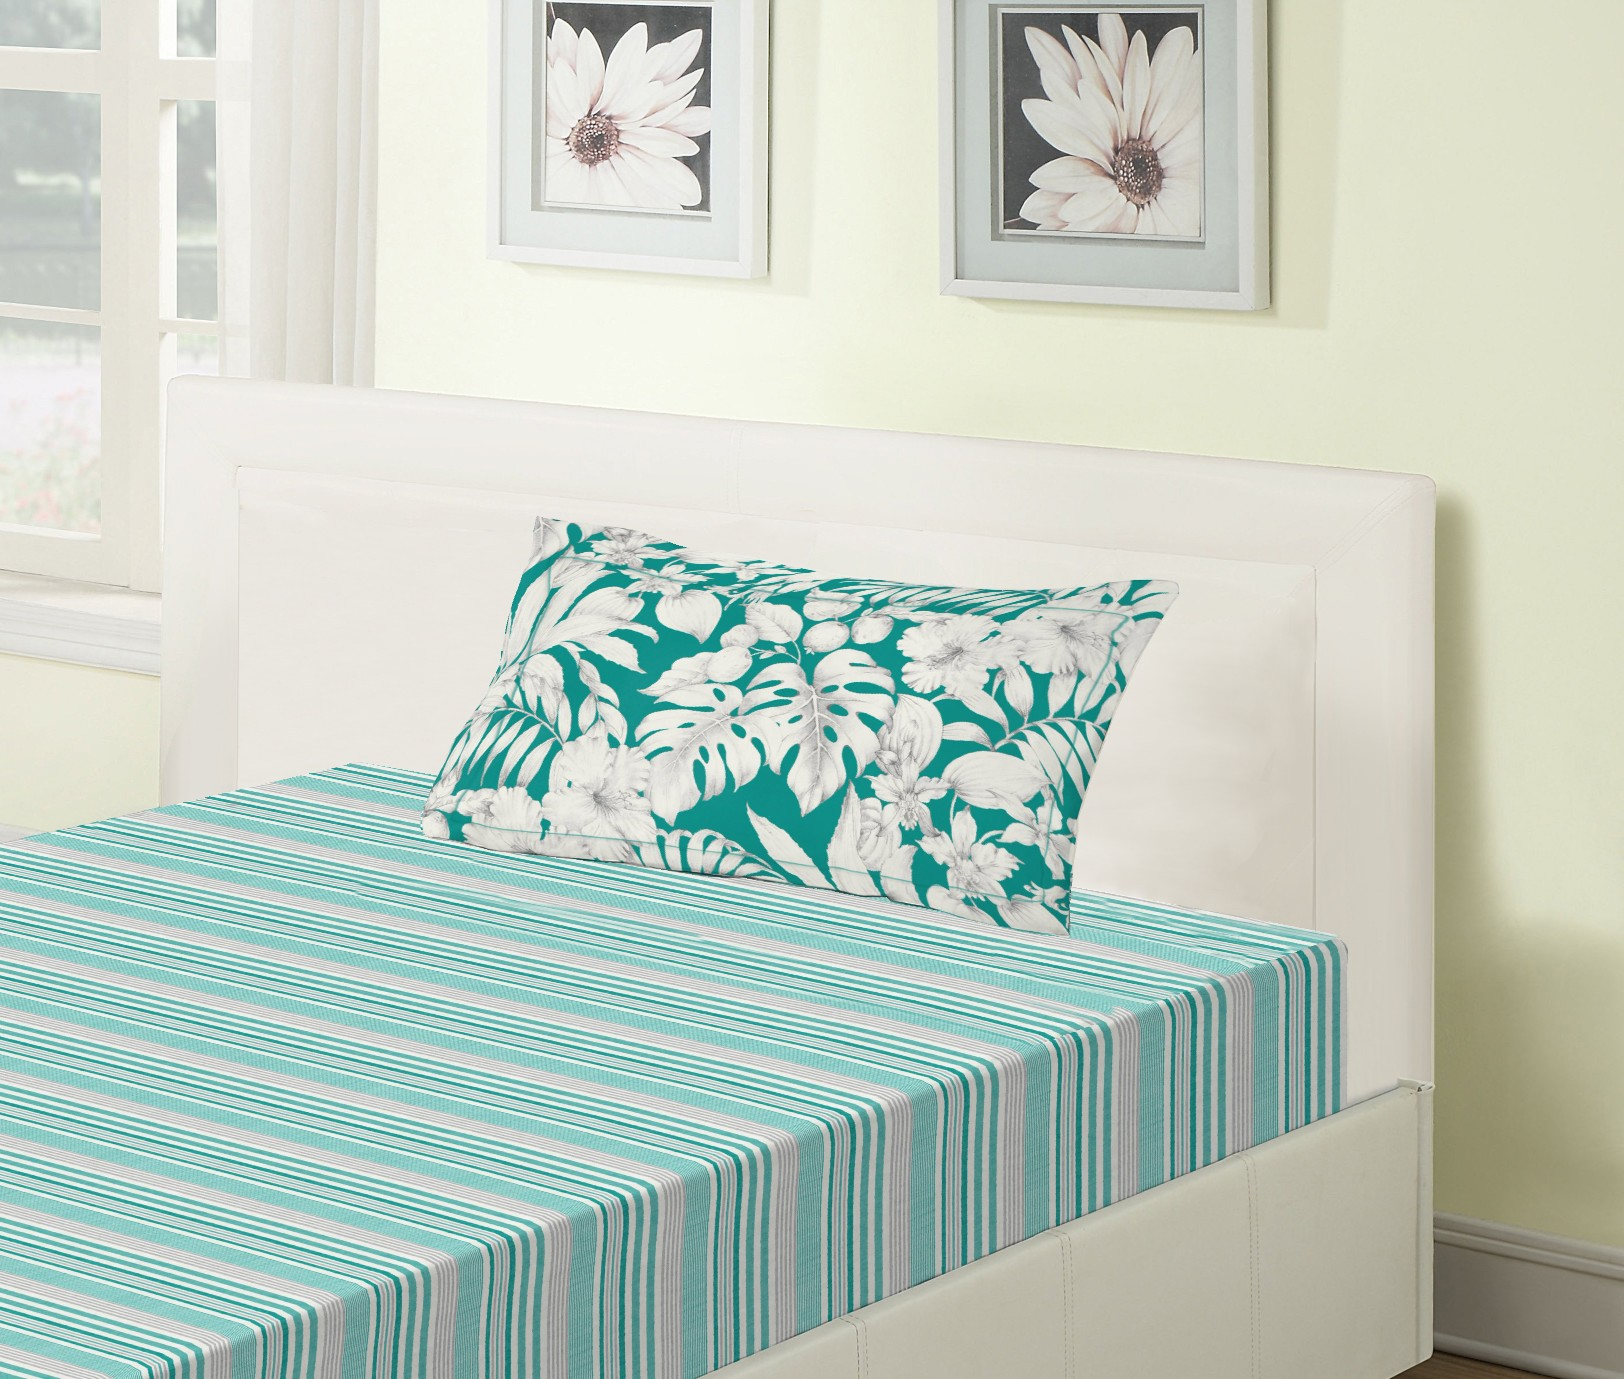 Emilia Cotton Single Bedsheets in Teal Colour by Living Essence